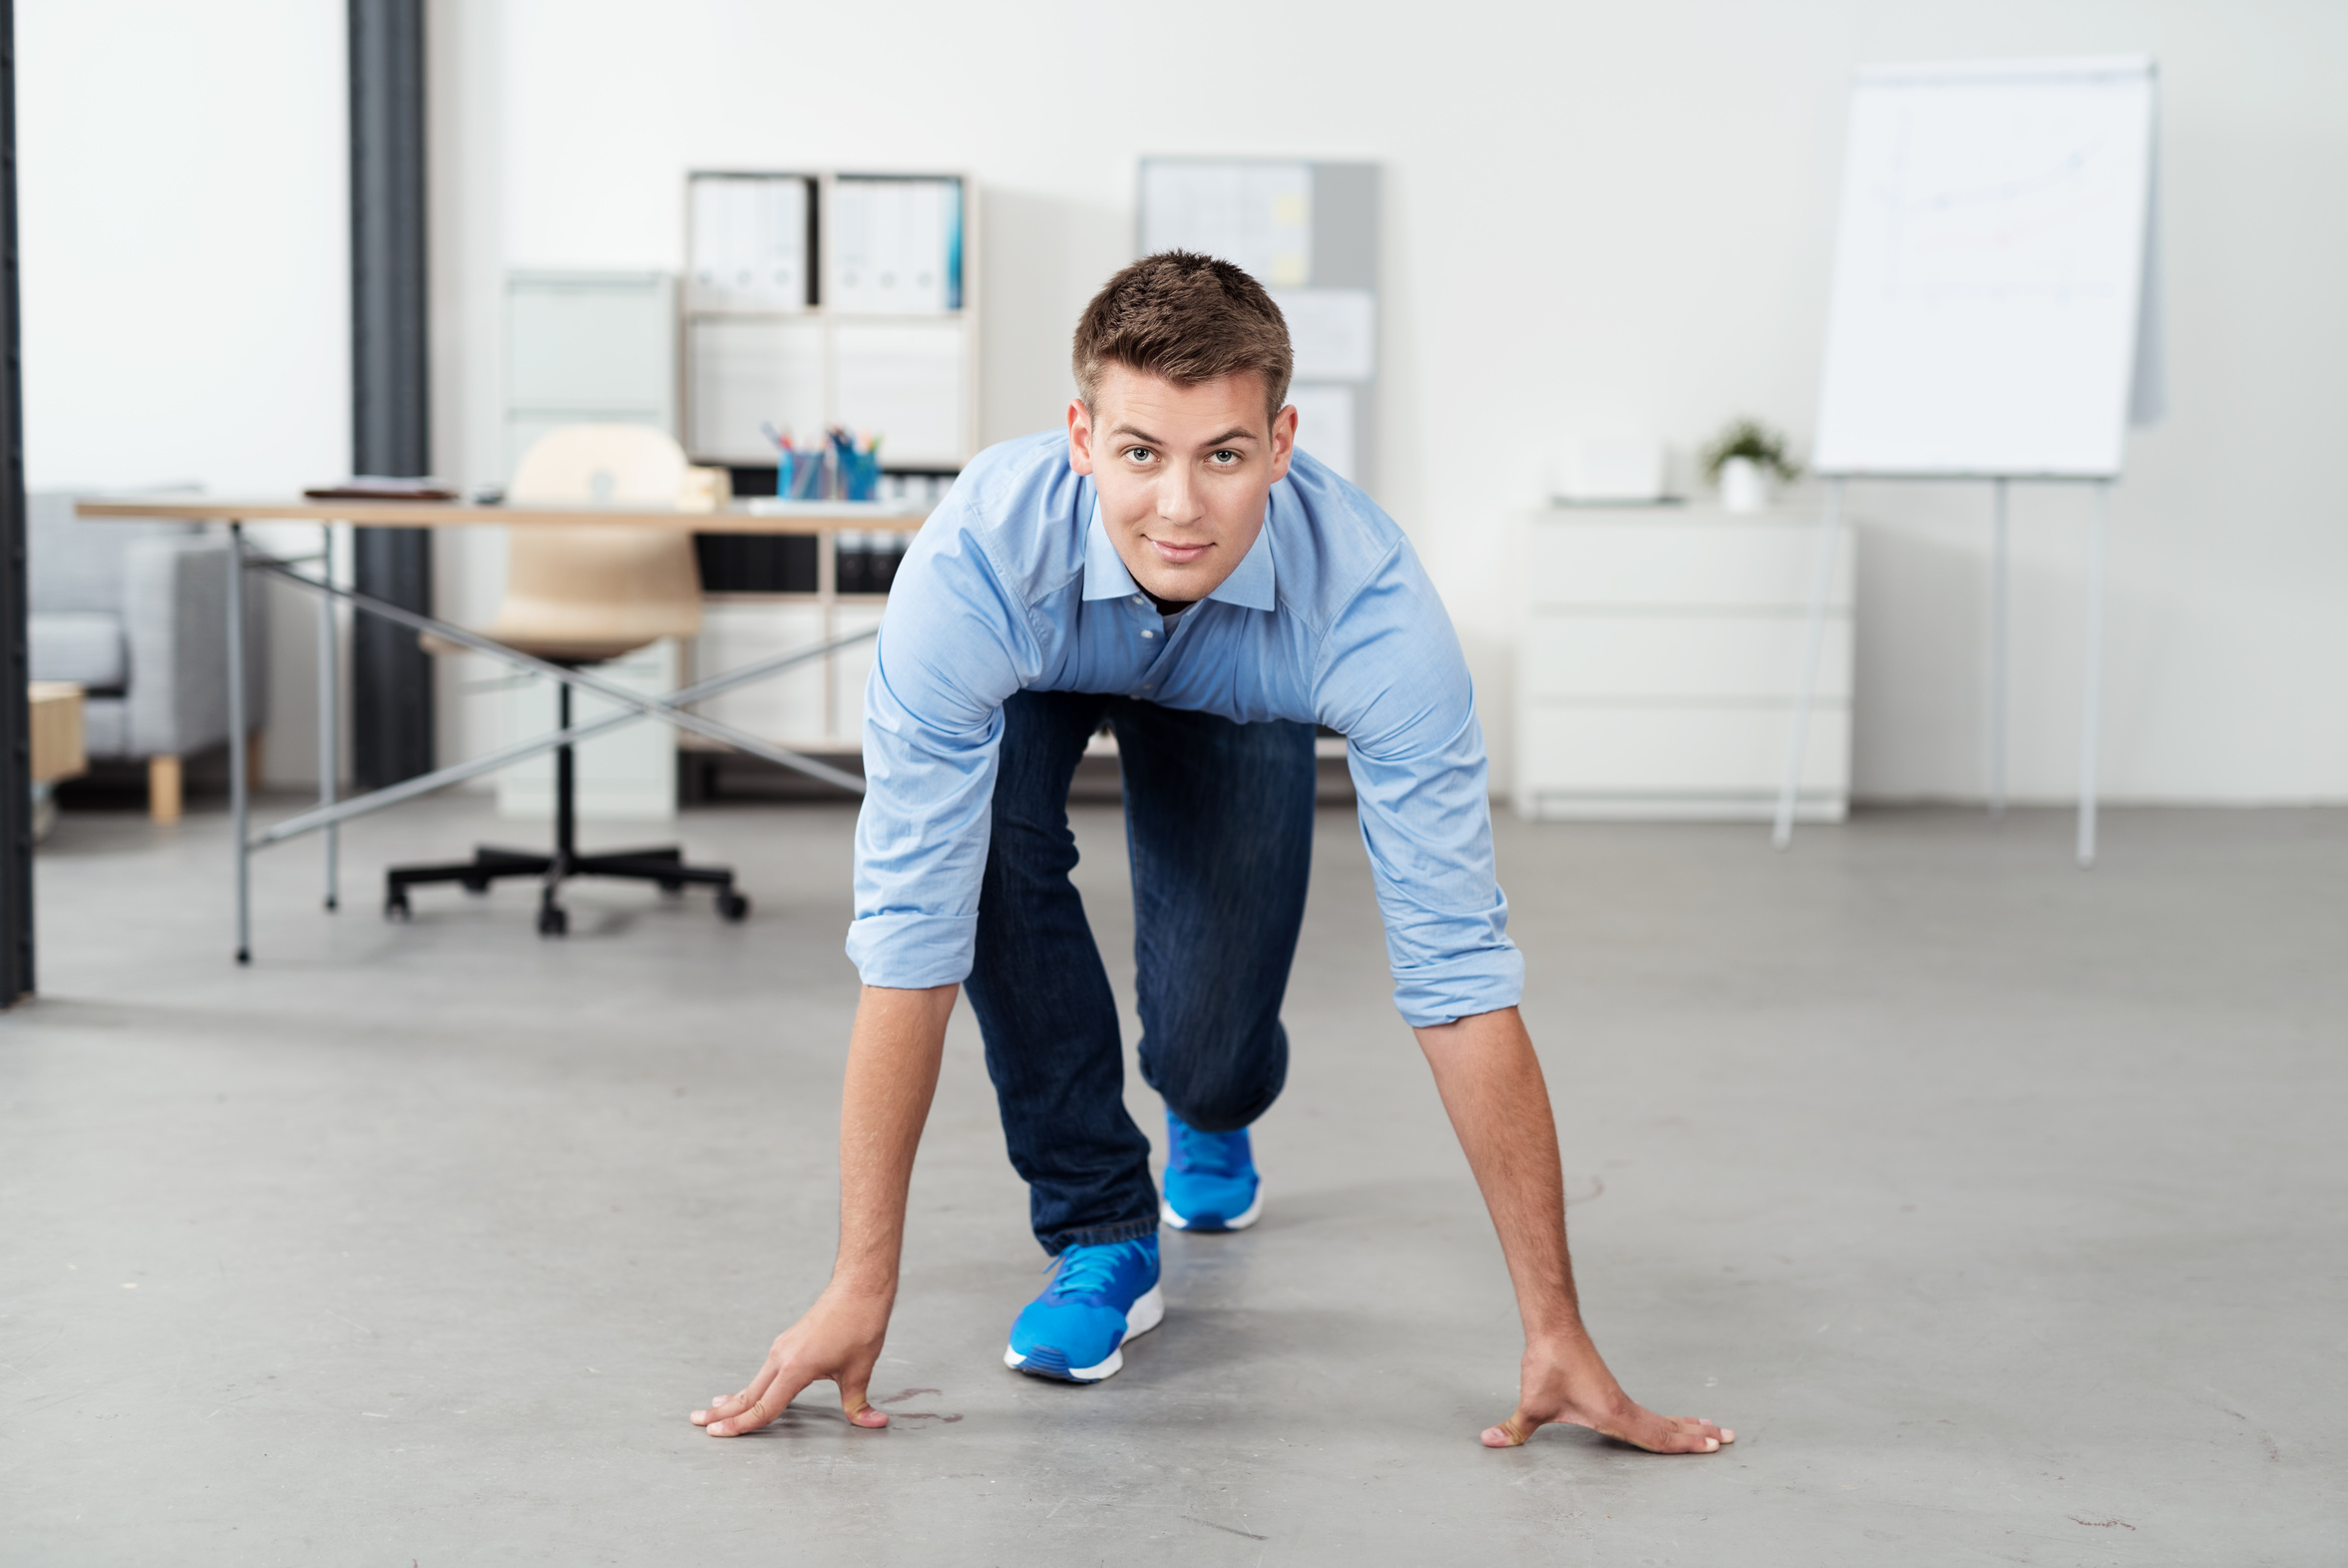 Health promotion in the workplace - physical wellbeing